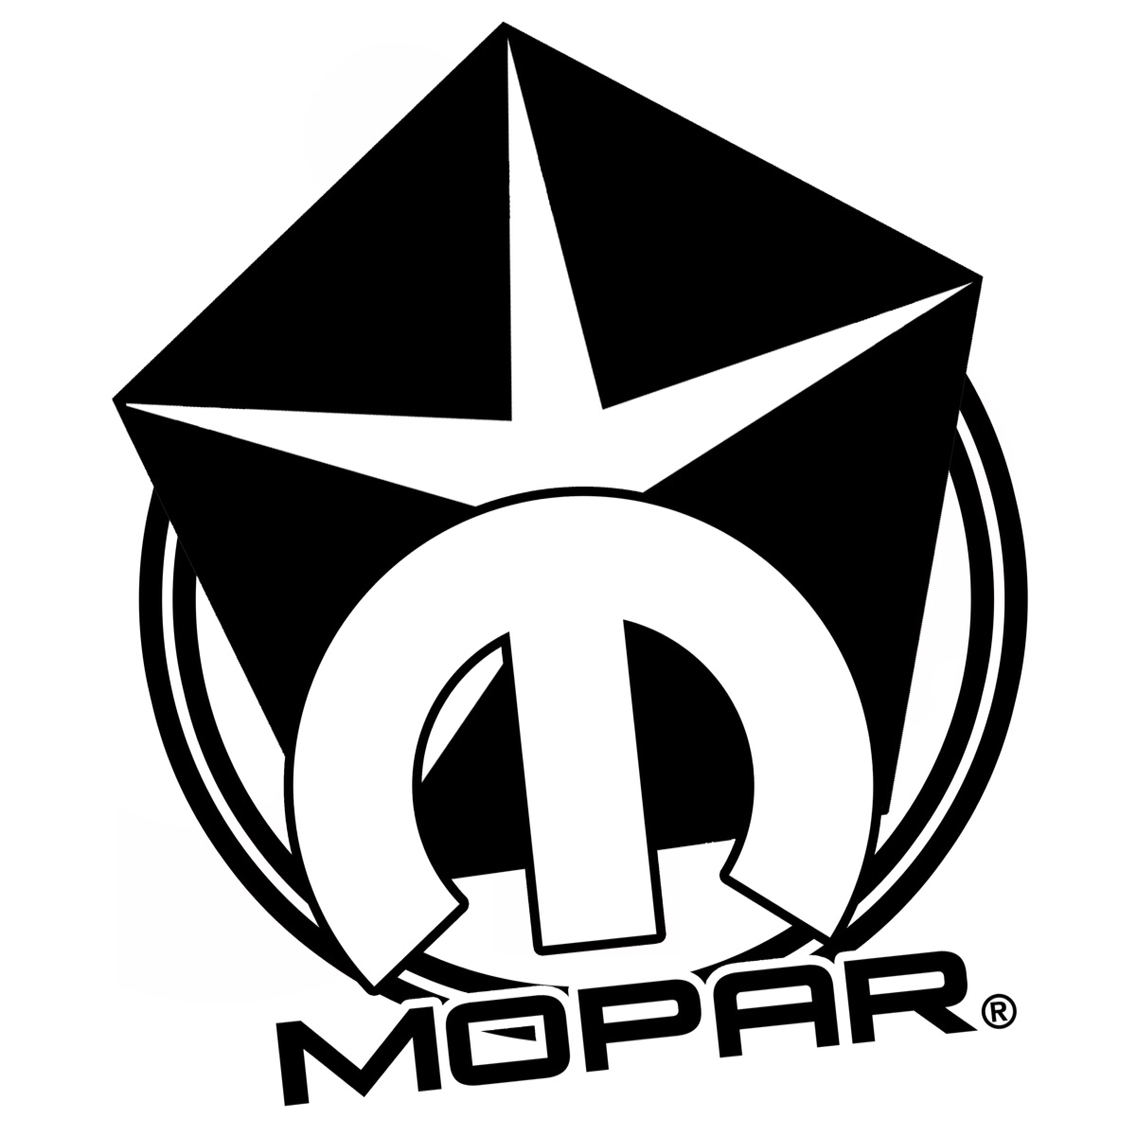 Mopar clipart #8, Download drawings